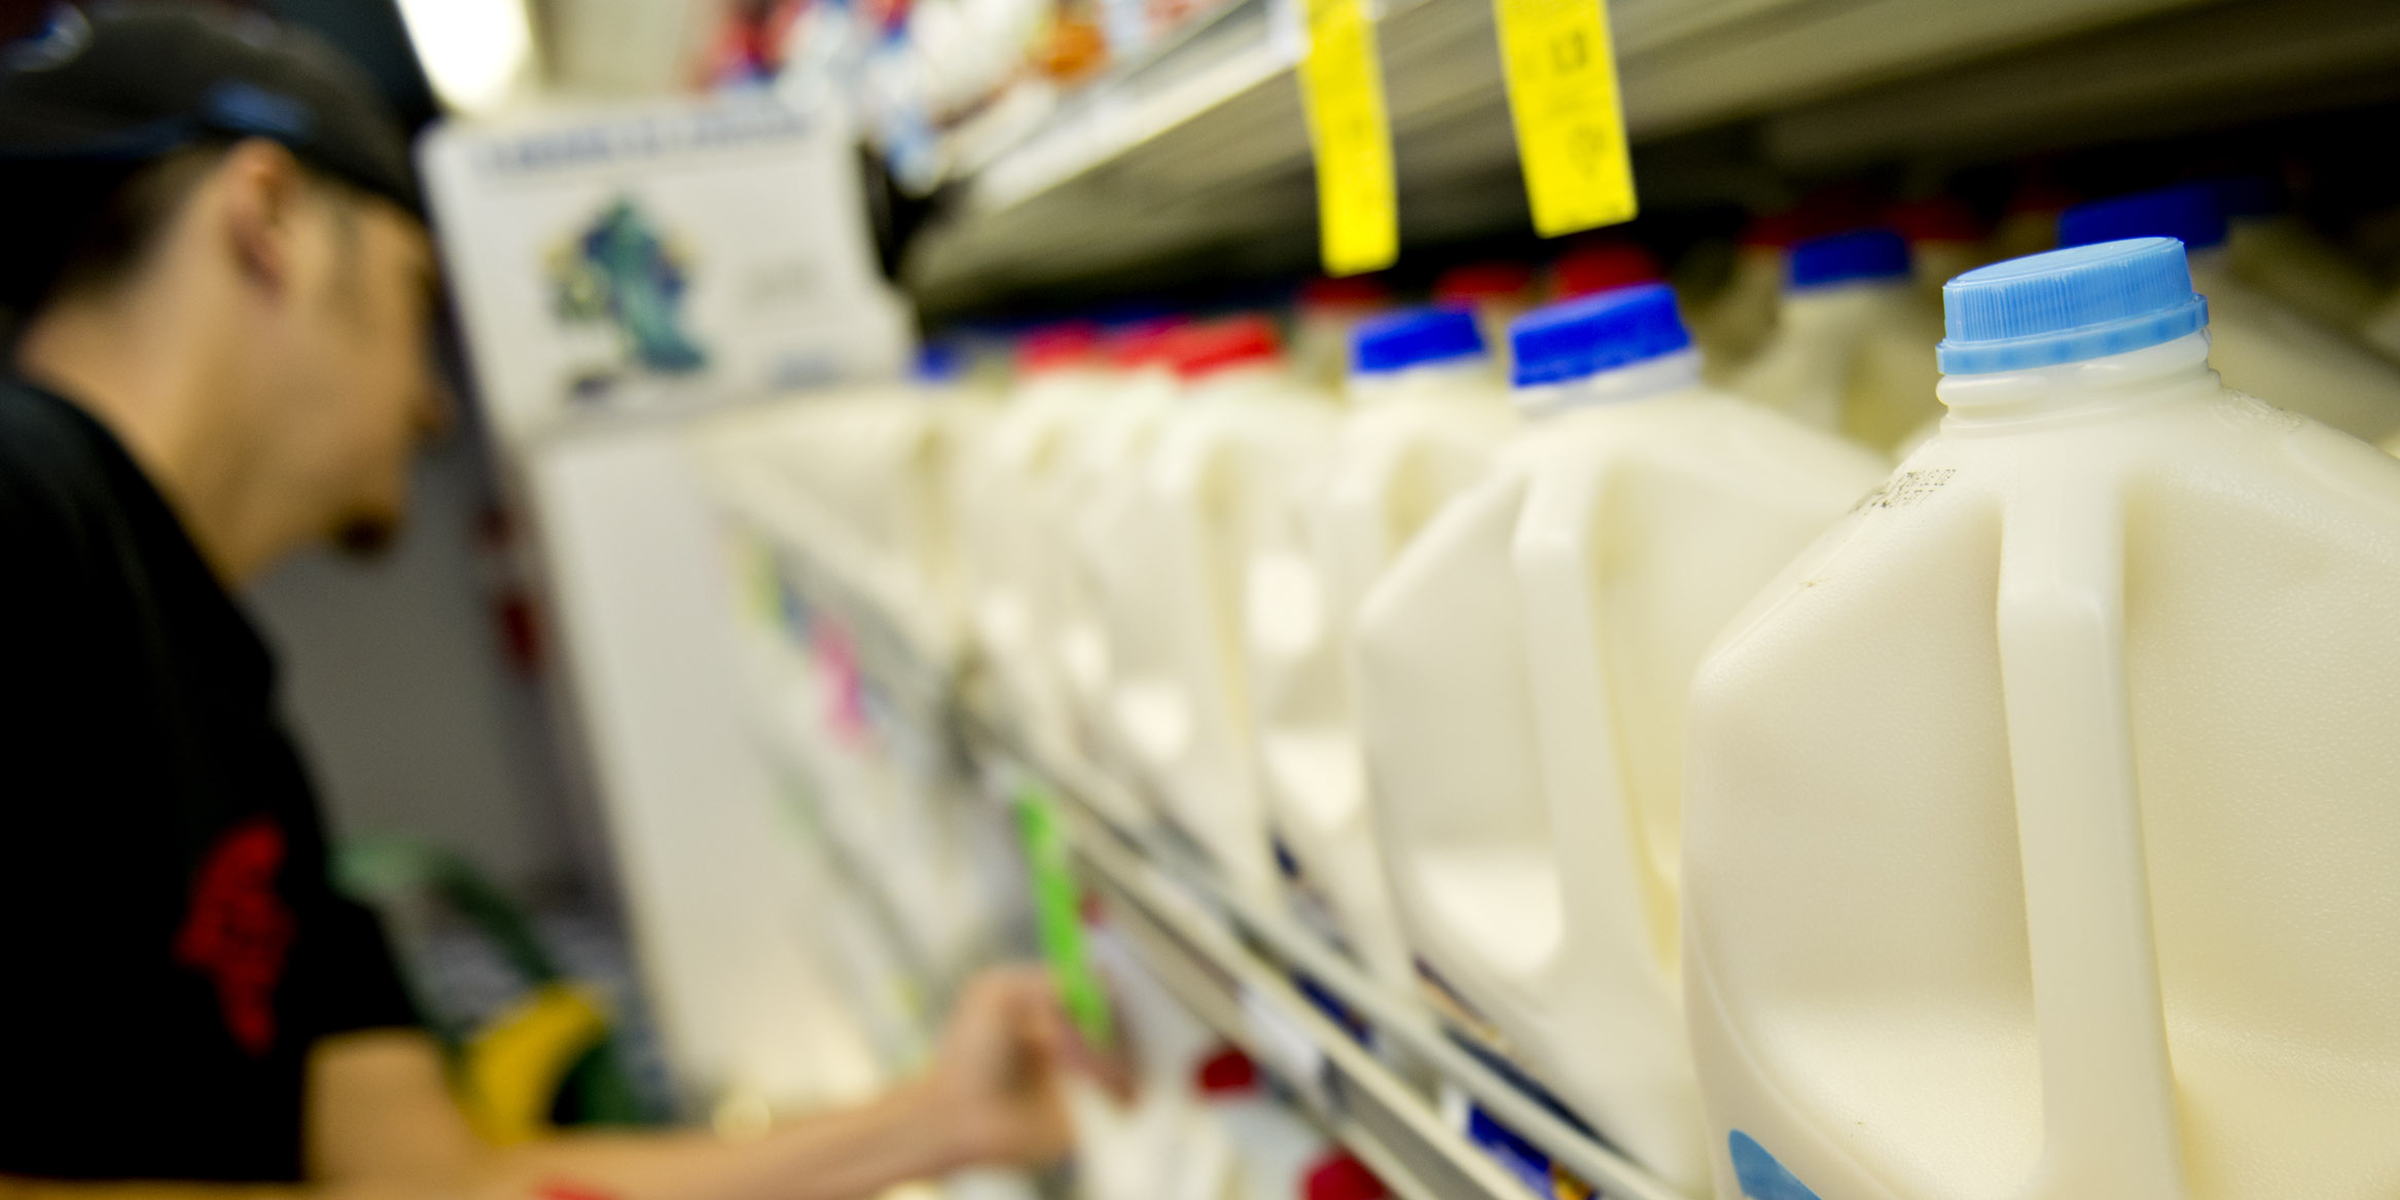 Is dairy bad for you? Nutritionist discusses debate about health benefits